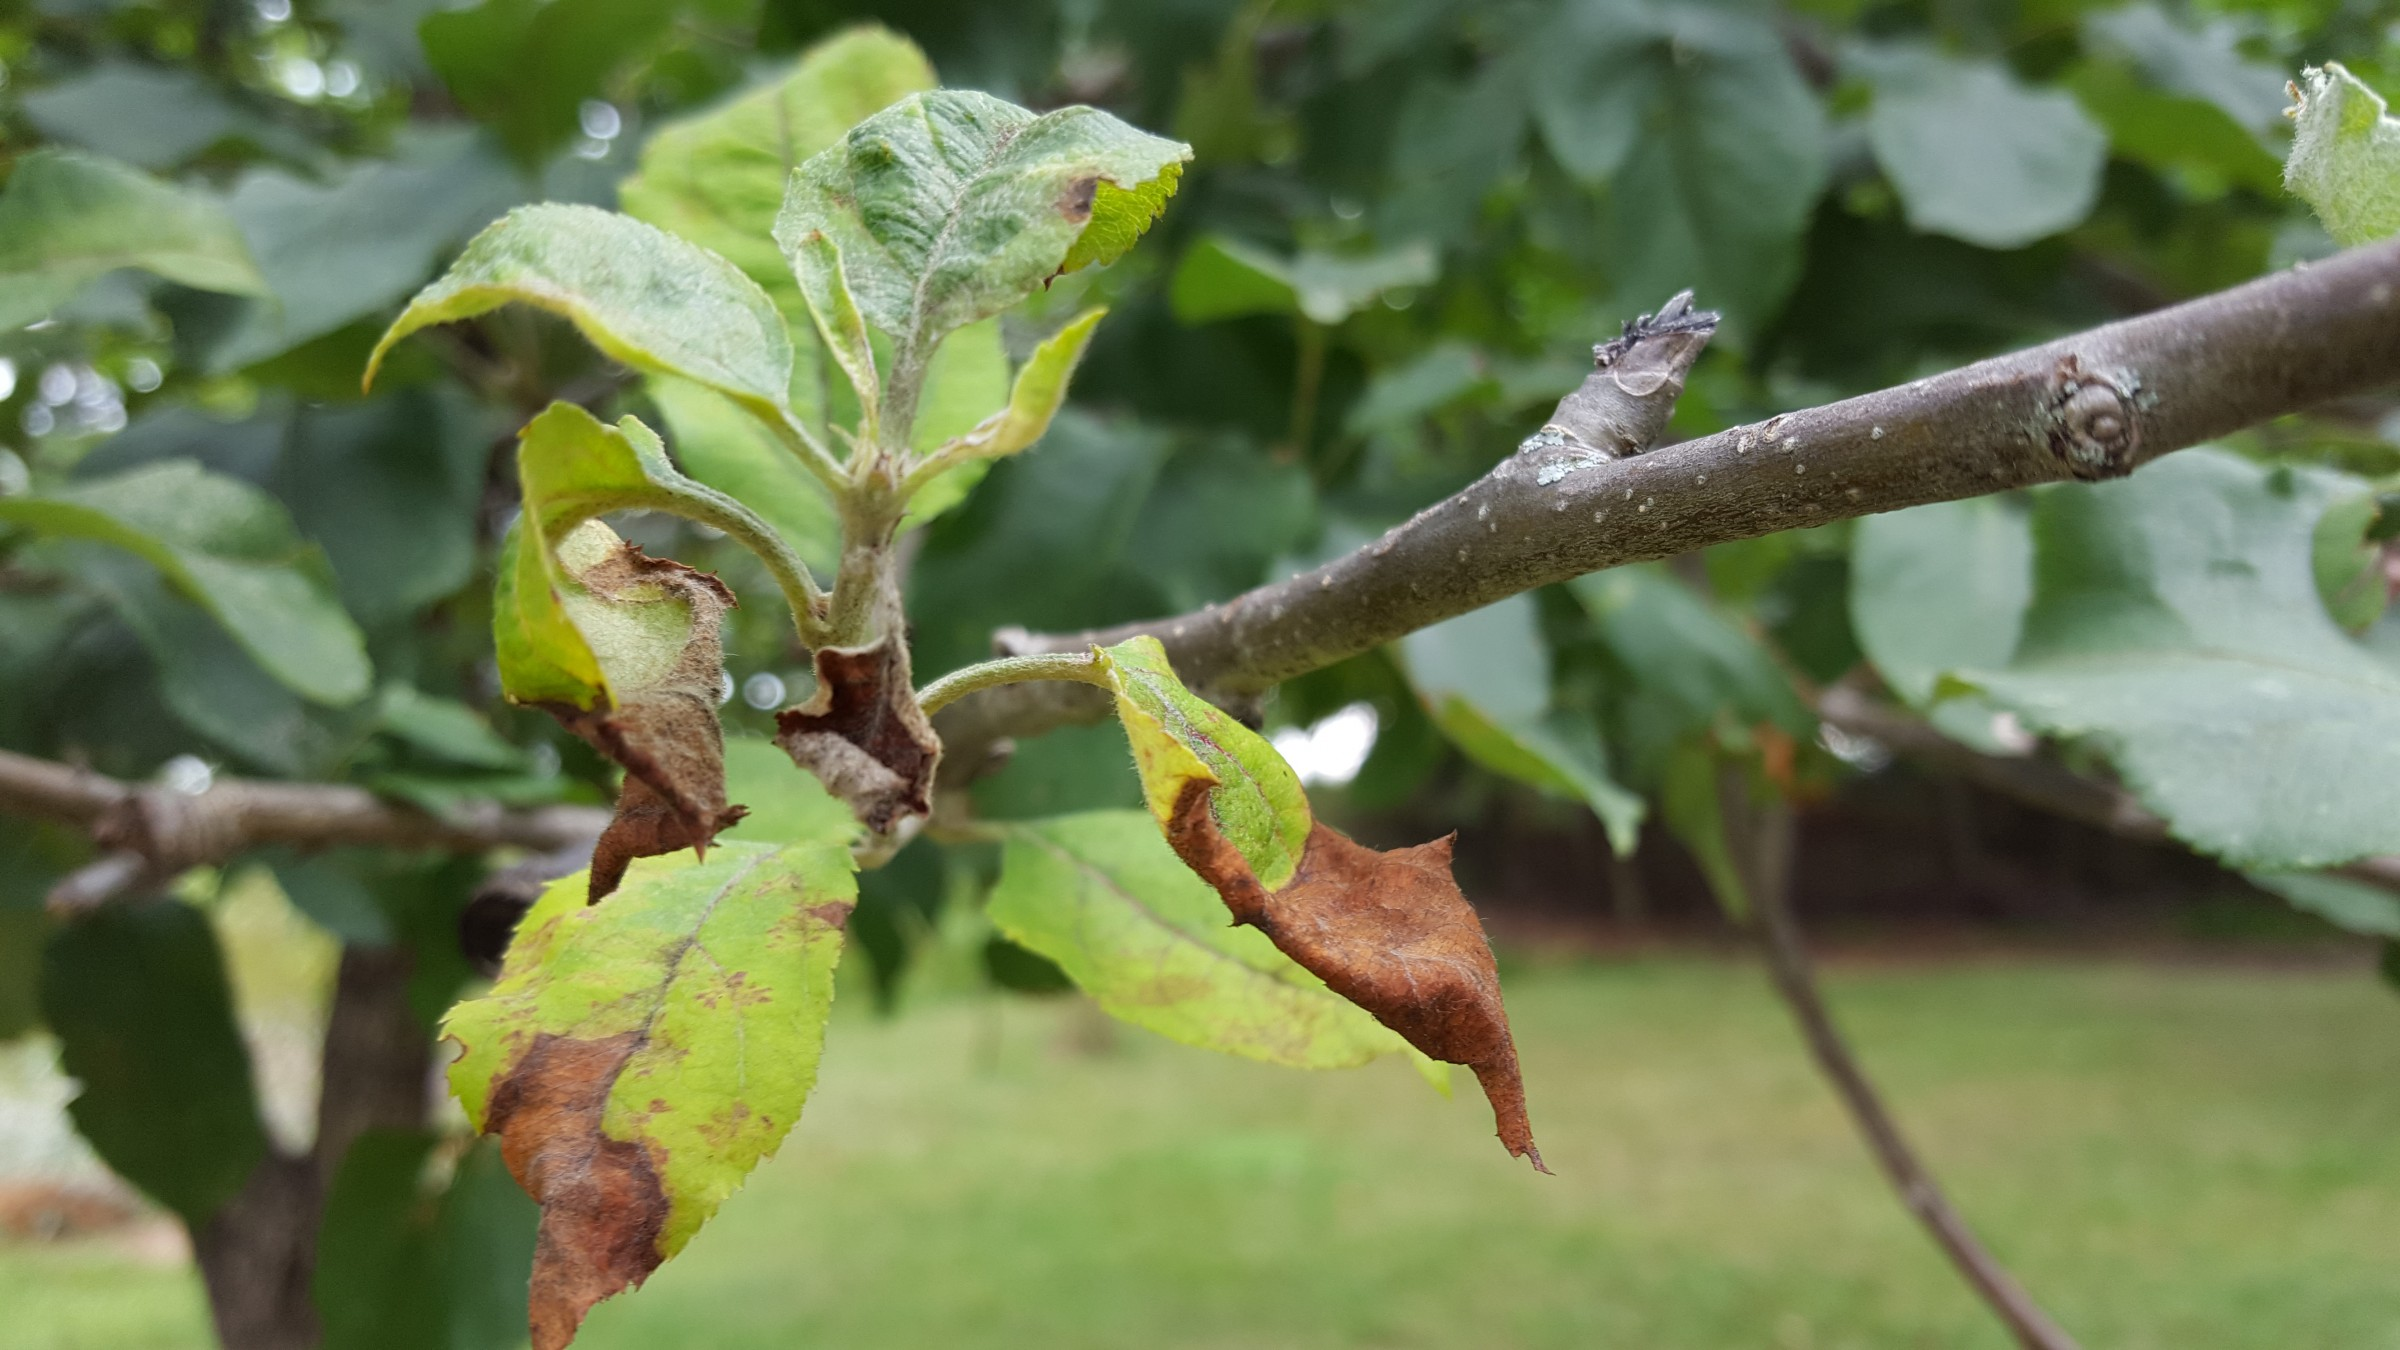 Natural Apple Tree Leaves Brown Curled Apple Leaves Plantdoc Apple Tree Leaves Drying Up Apple Tree Leaves Diseases houzz-02 Apple Tree Leaves